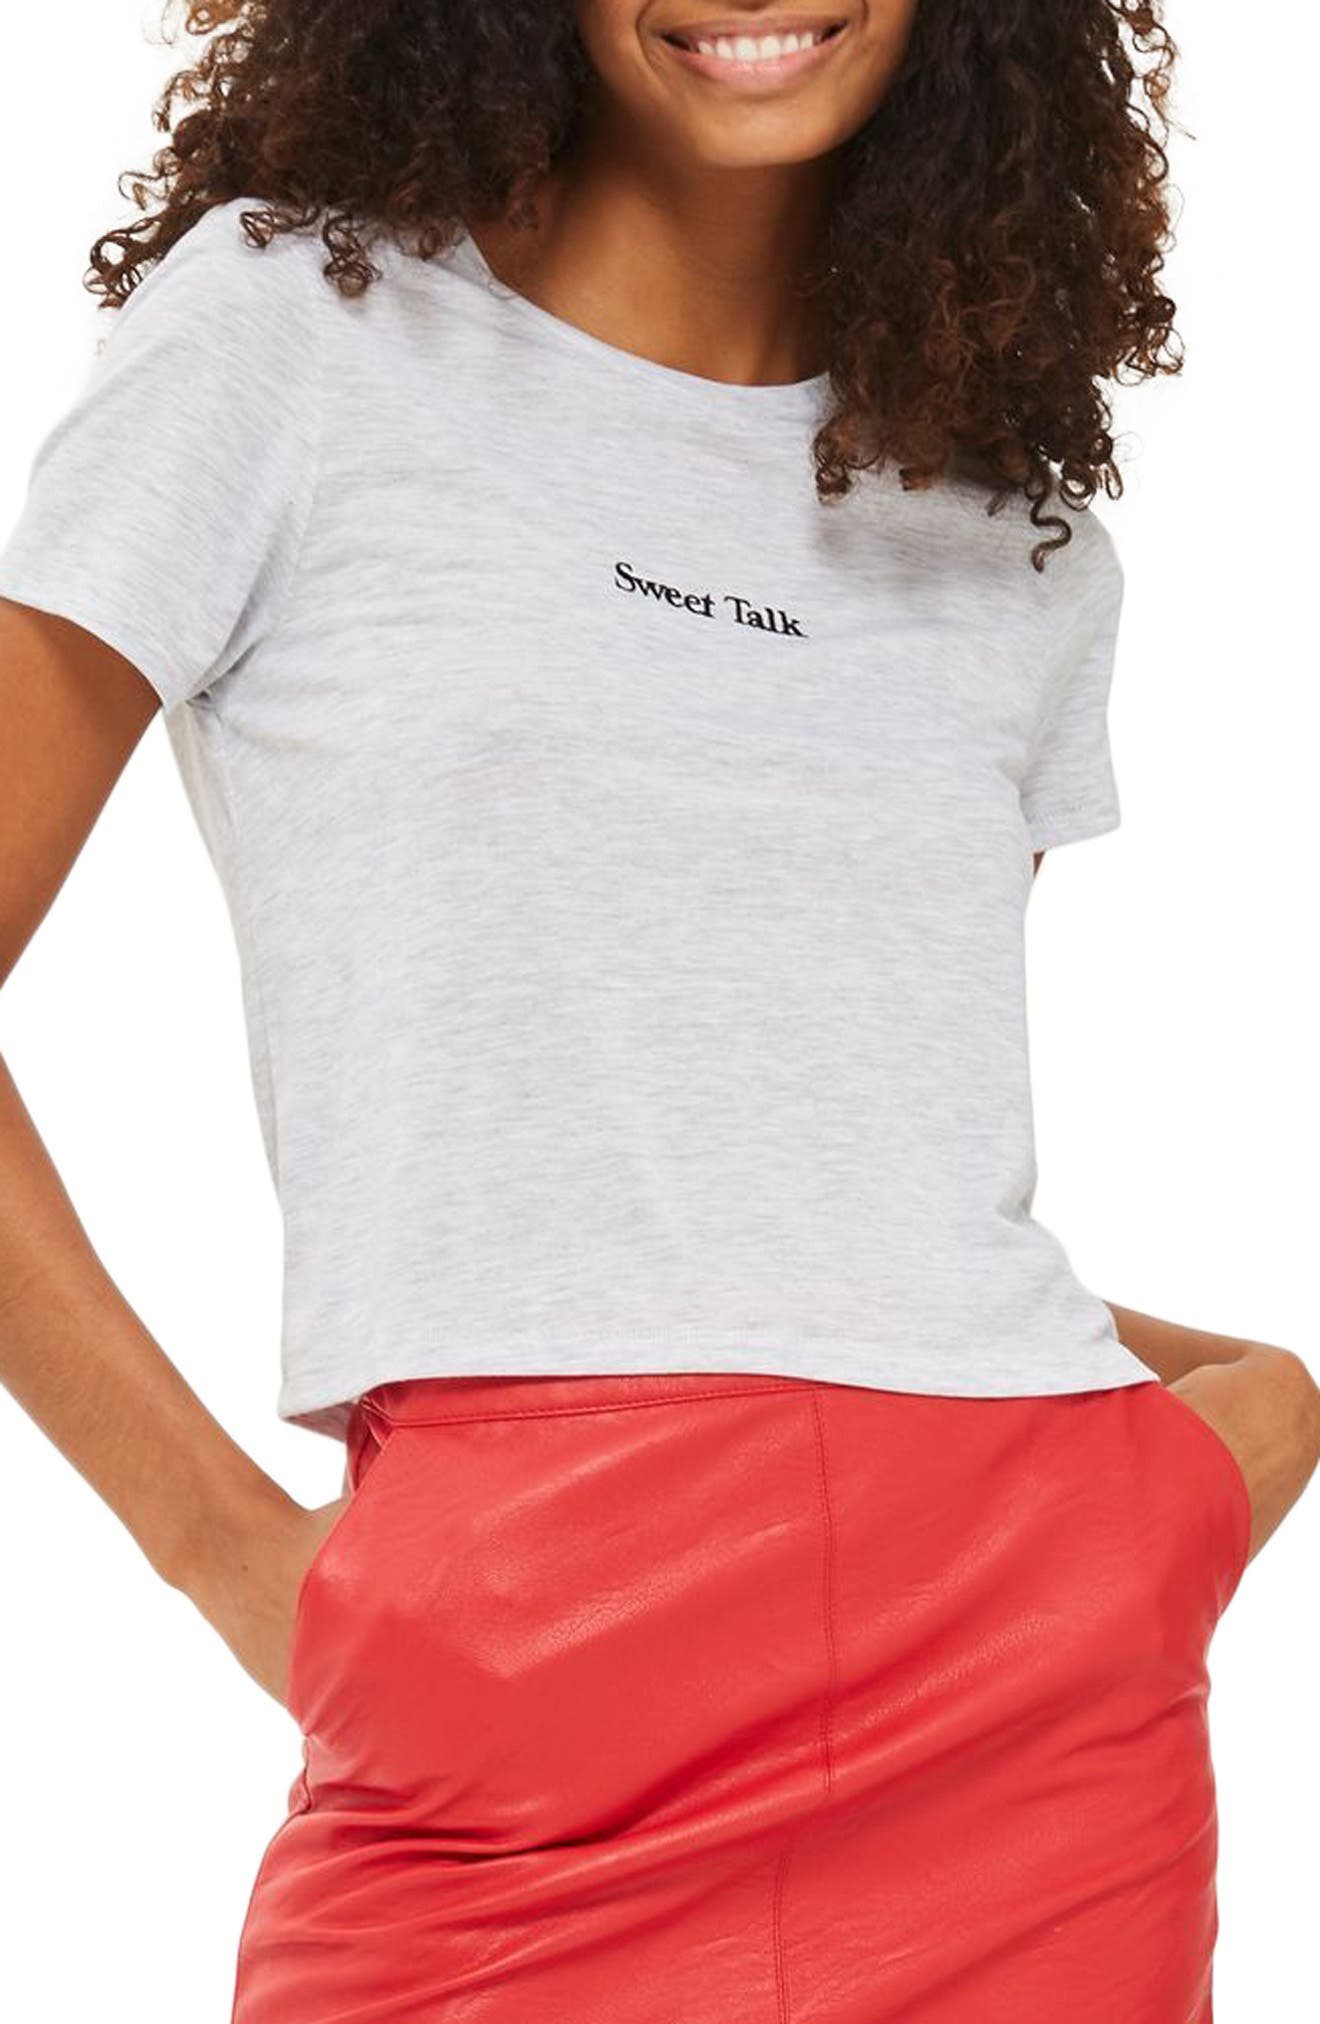 Topshop Sweet Talk Tee (Regular & Petite)